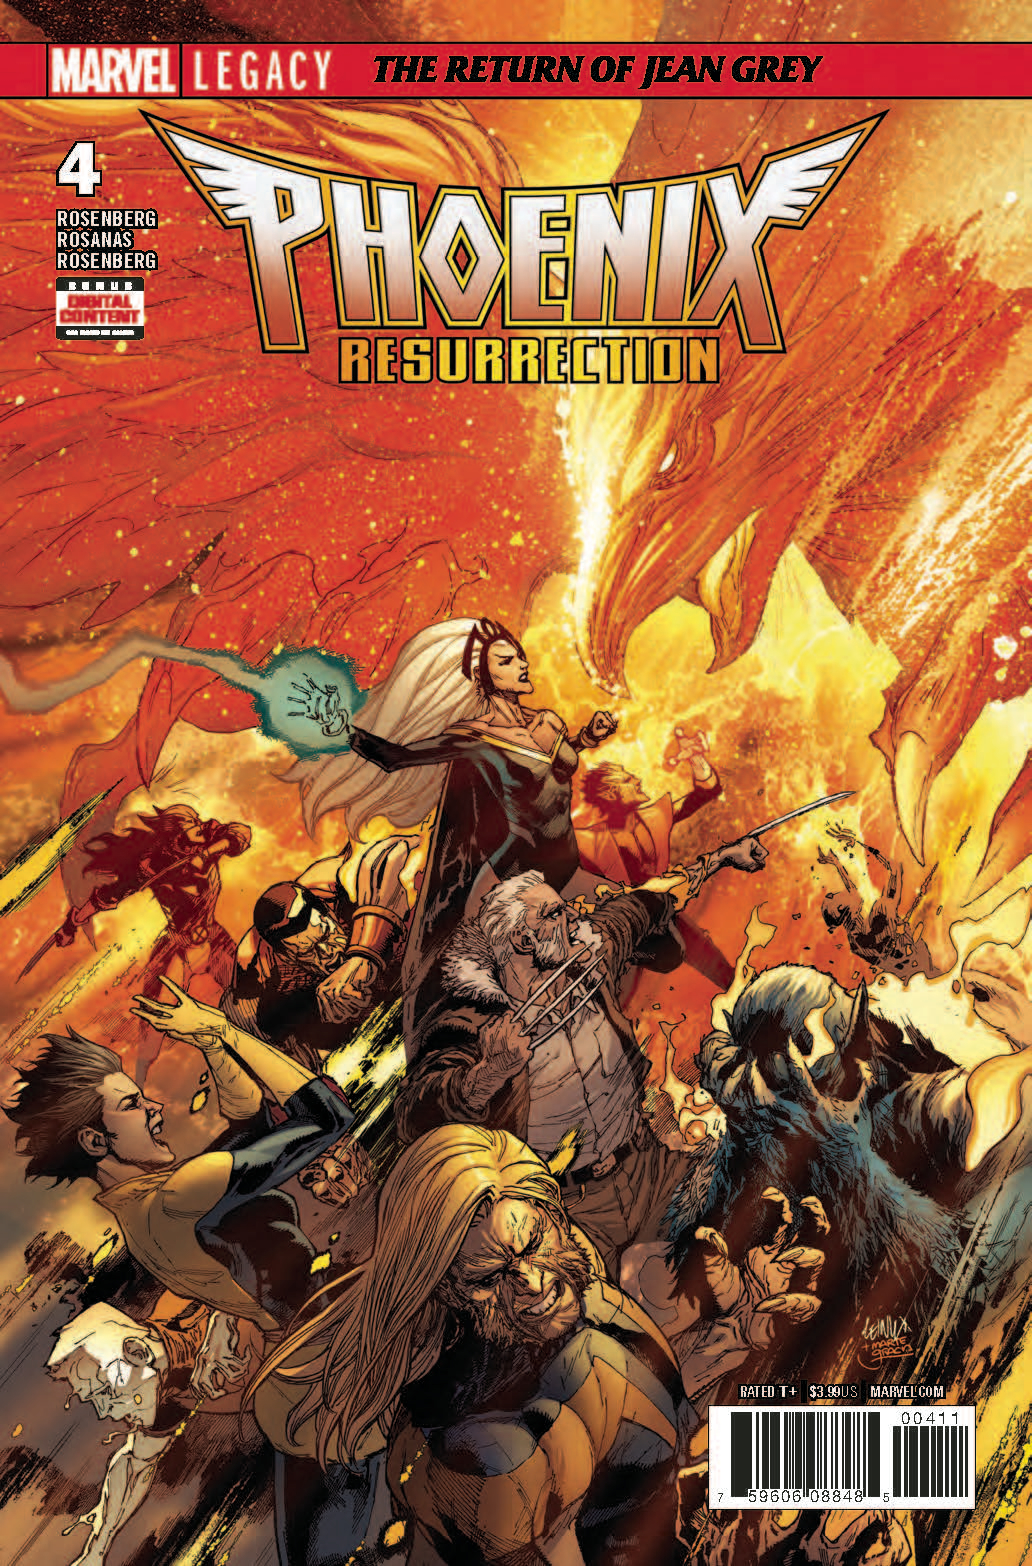 PHOENIX RESURRECTION RETURN JEAN GREY #4 (OF 5) LEG